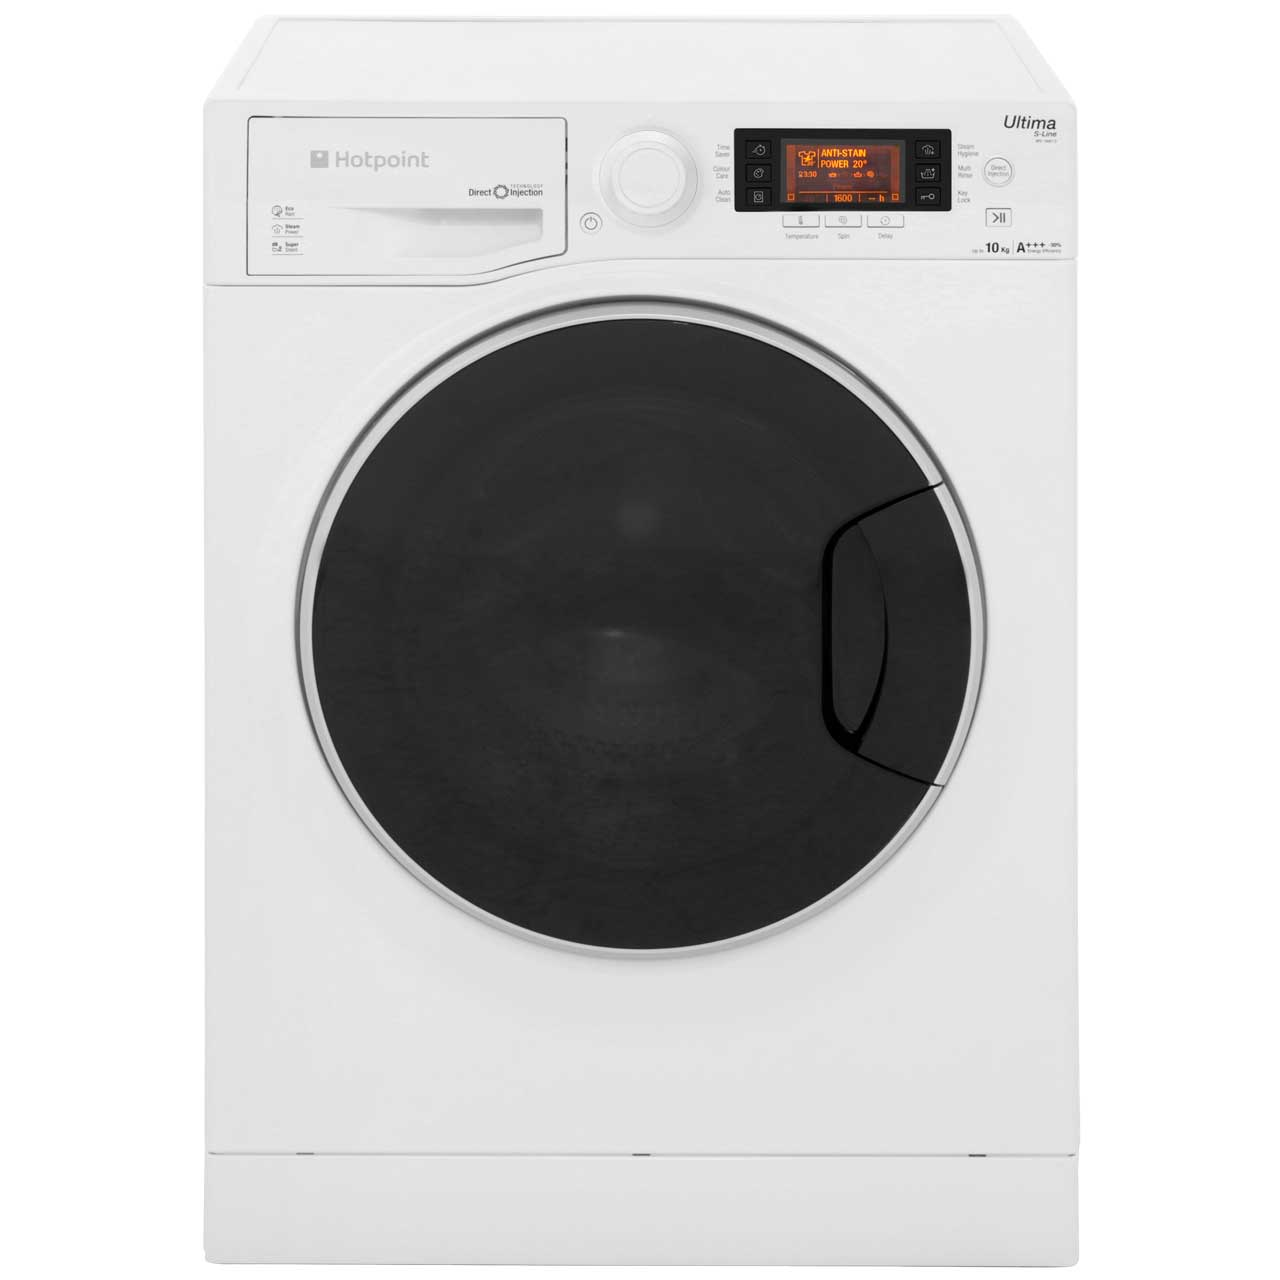 Hotpoint Ultima S-Line RPD10667DD 10Kg Washing Machine with 1600 rpm - White